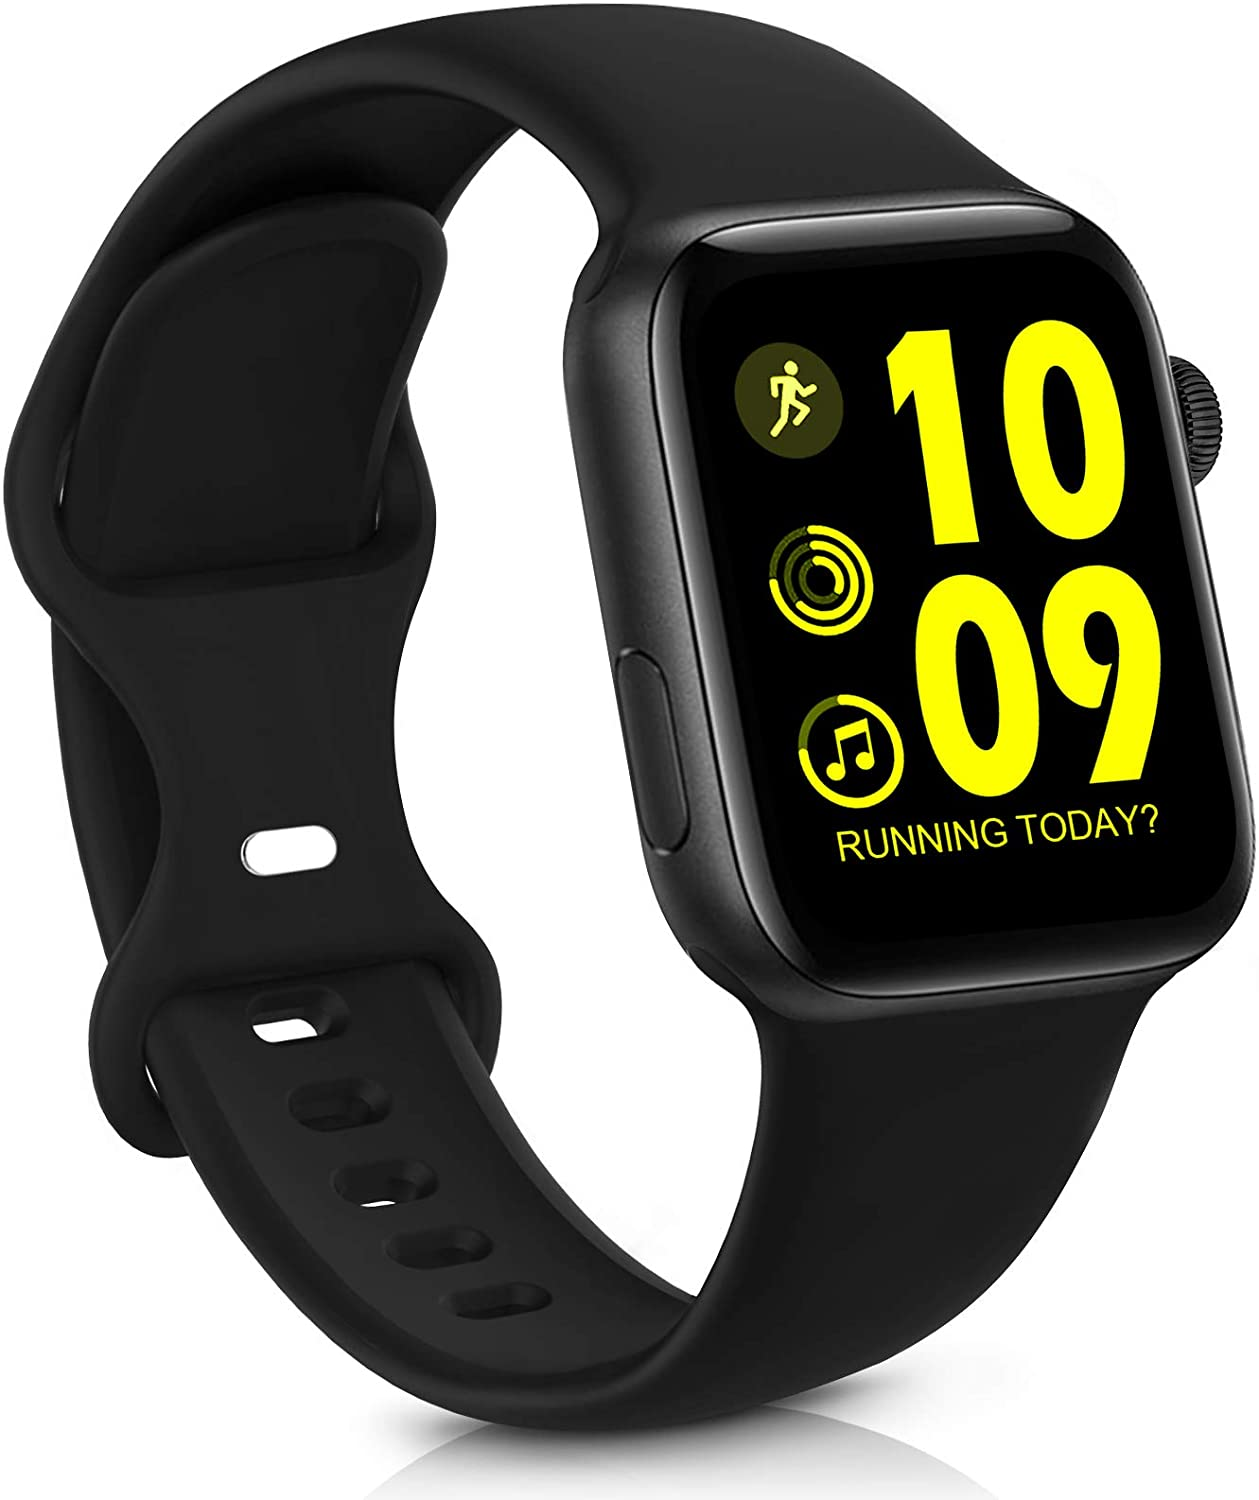 GeekSpark Sport Band Compatible with Apple Watch Band 38mm 40mm 42mm 44mm for Women Men, Soft Silicone Replacement Strap Band for iwatch SE/Series 6/5/4/3/2/1 Black 42mm/44mm S/M